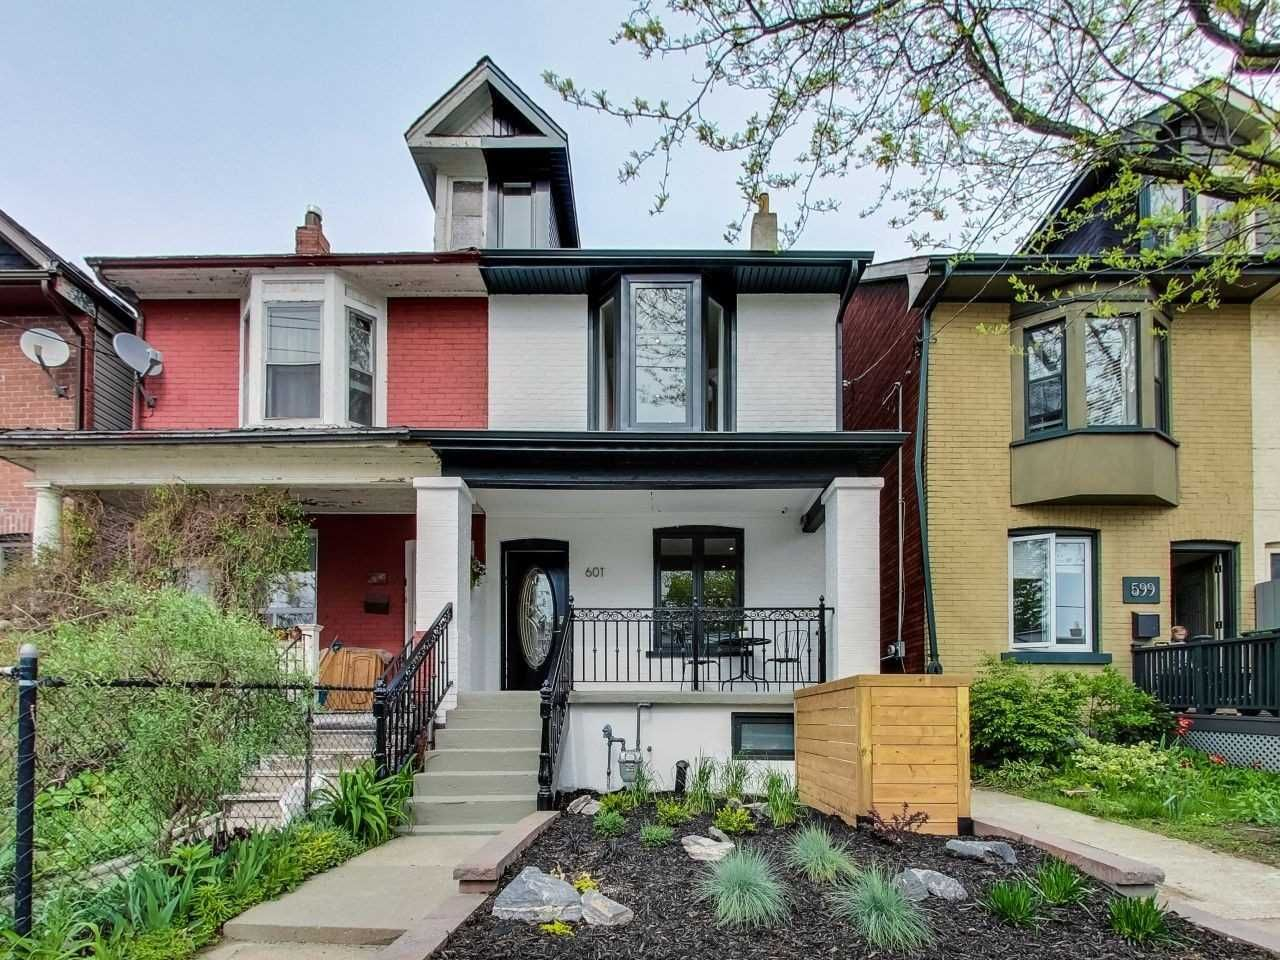 Main Photo: 601A Pape Avenue in Toronto: South Riverdale House (2 1/2 Storey) for lease (Toronto E01)  : MLS®# E4649373